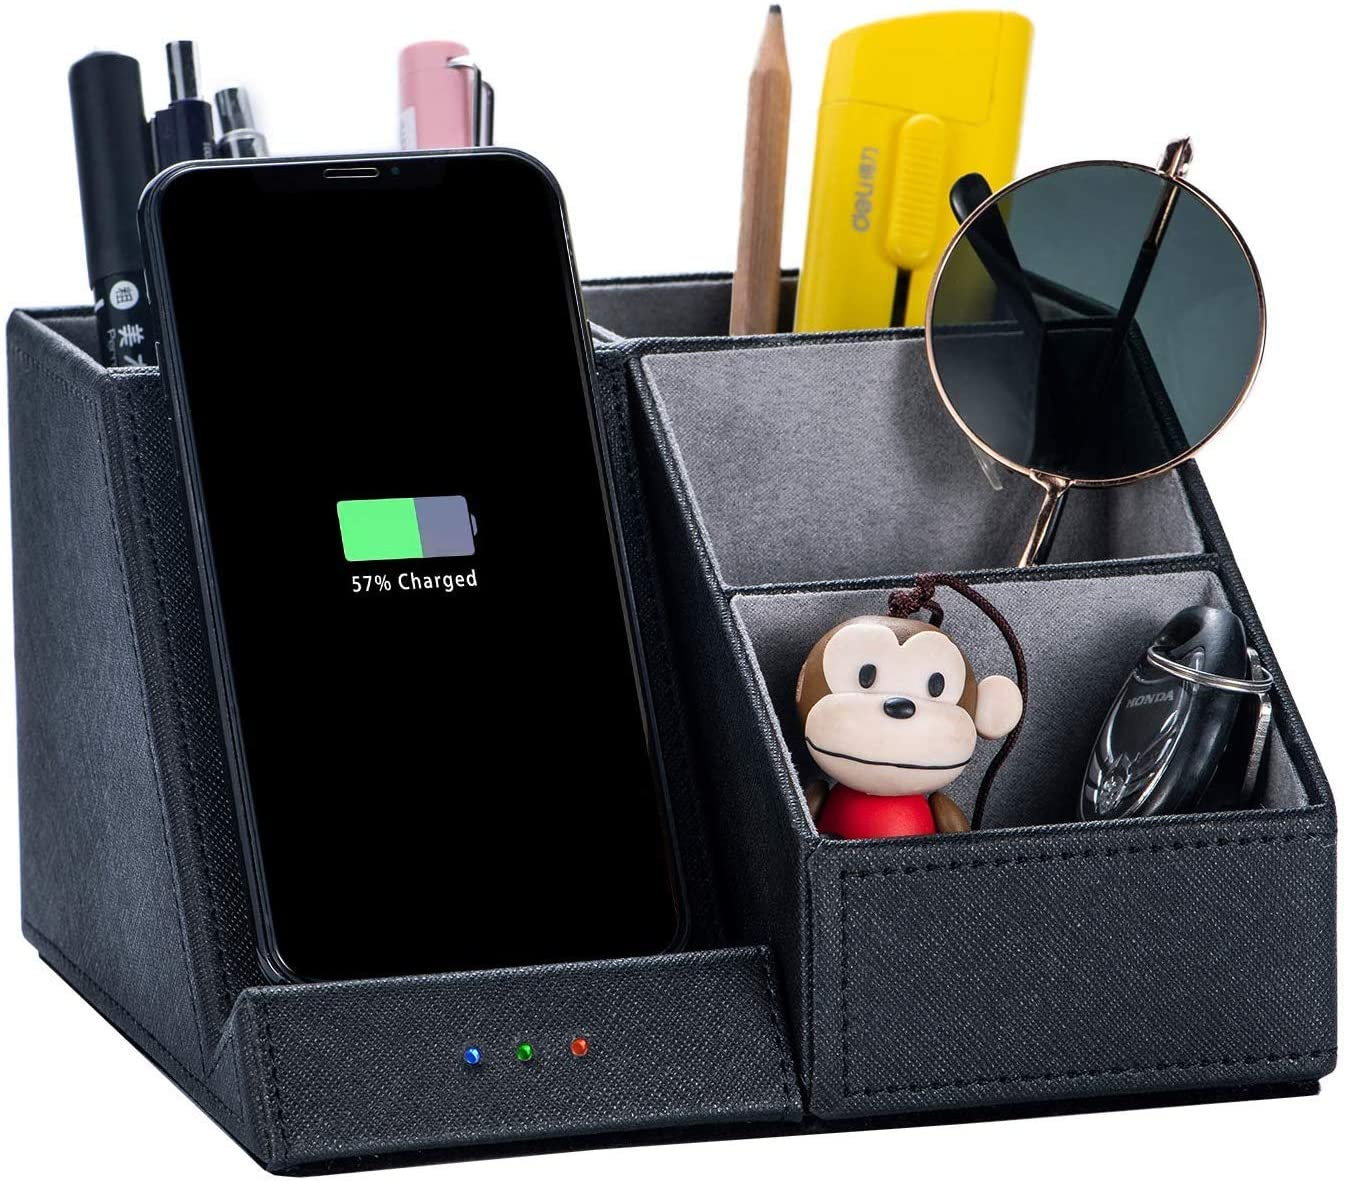 10W Fast Wireless Charger with Desk Organizer Qi Certified Fabric Induction Charger Stand Pen Pencil Holder ,with Wireless Charging - Multi-Function Desktop Storage Bo